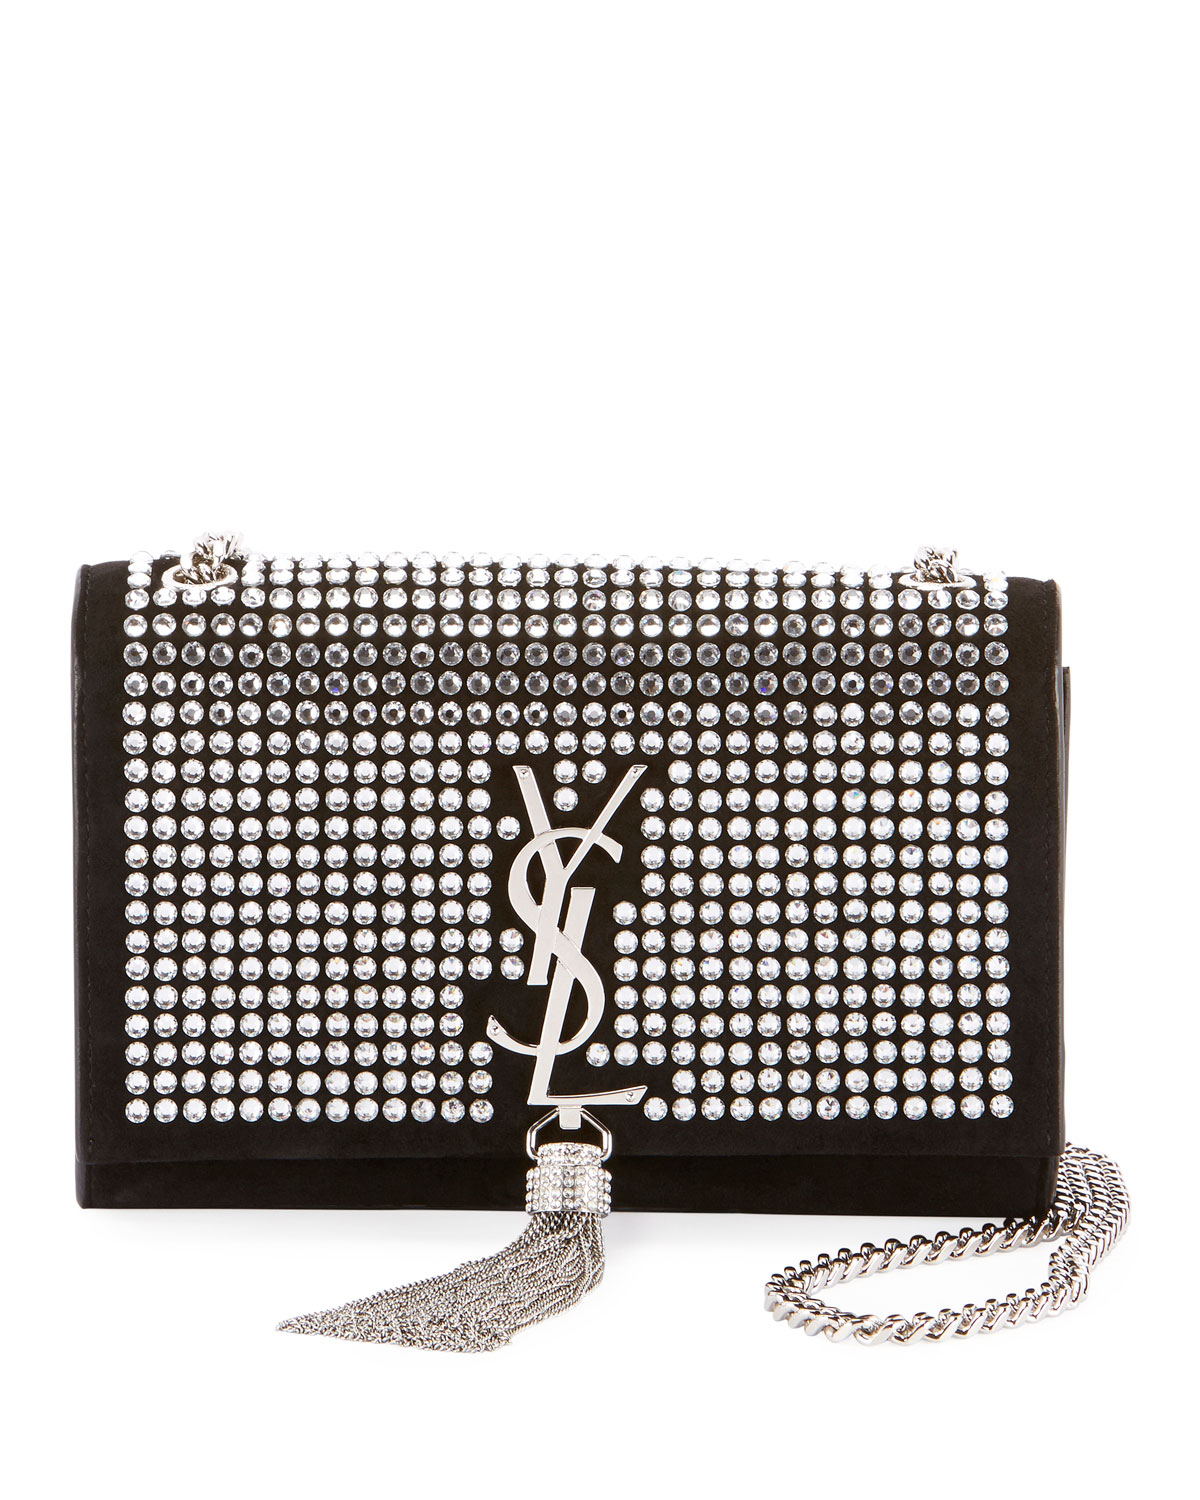 c892bd8e5d2 Kate Monogram YSL Small Tassel Chain Crossbody Bag with Crystals - Miroir  Hardware